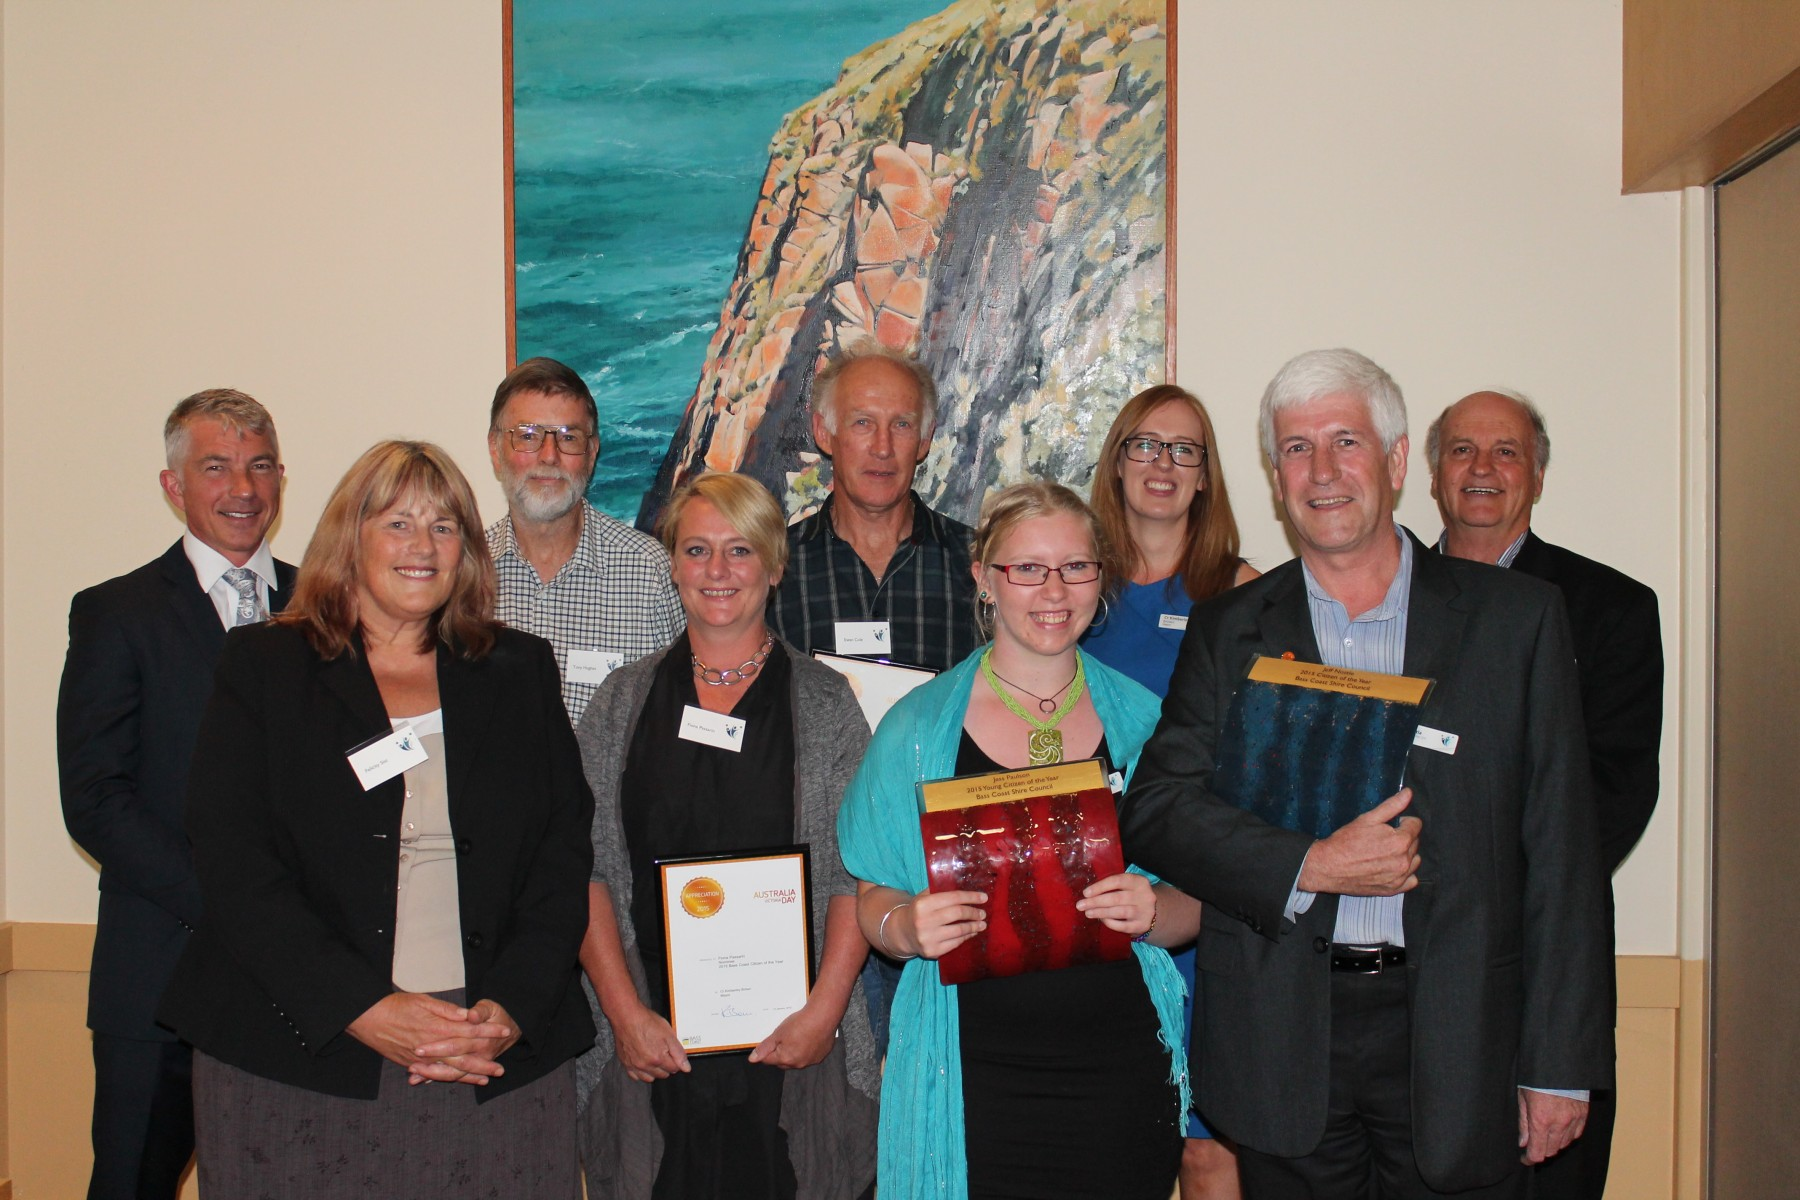 (clockwise from back left) Member for Bass, Brian Paynter MP; Tony Hughes; Ewan Cole; Bass Coast Shire Council Mayor, Kimberley Brown; John Duscher; 2015 Bass Coast Citizen of the Year, Jeff Nottle; 2015 Bass Coast Young Citizen of the Year, Jess Paulson; Fiona Passarin; and Council Acting CEO, Felicity Sist.